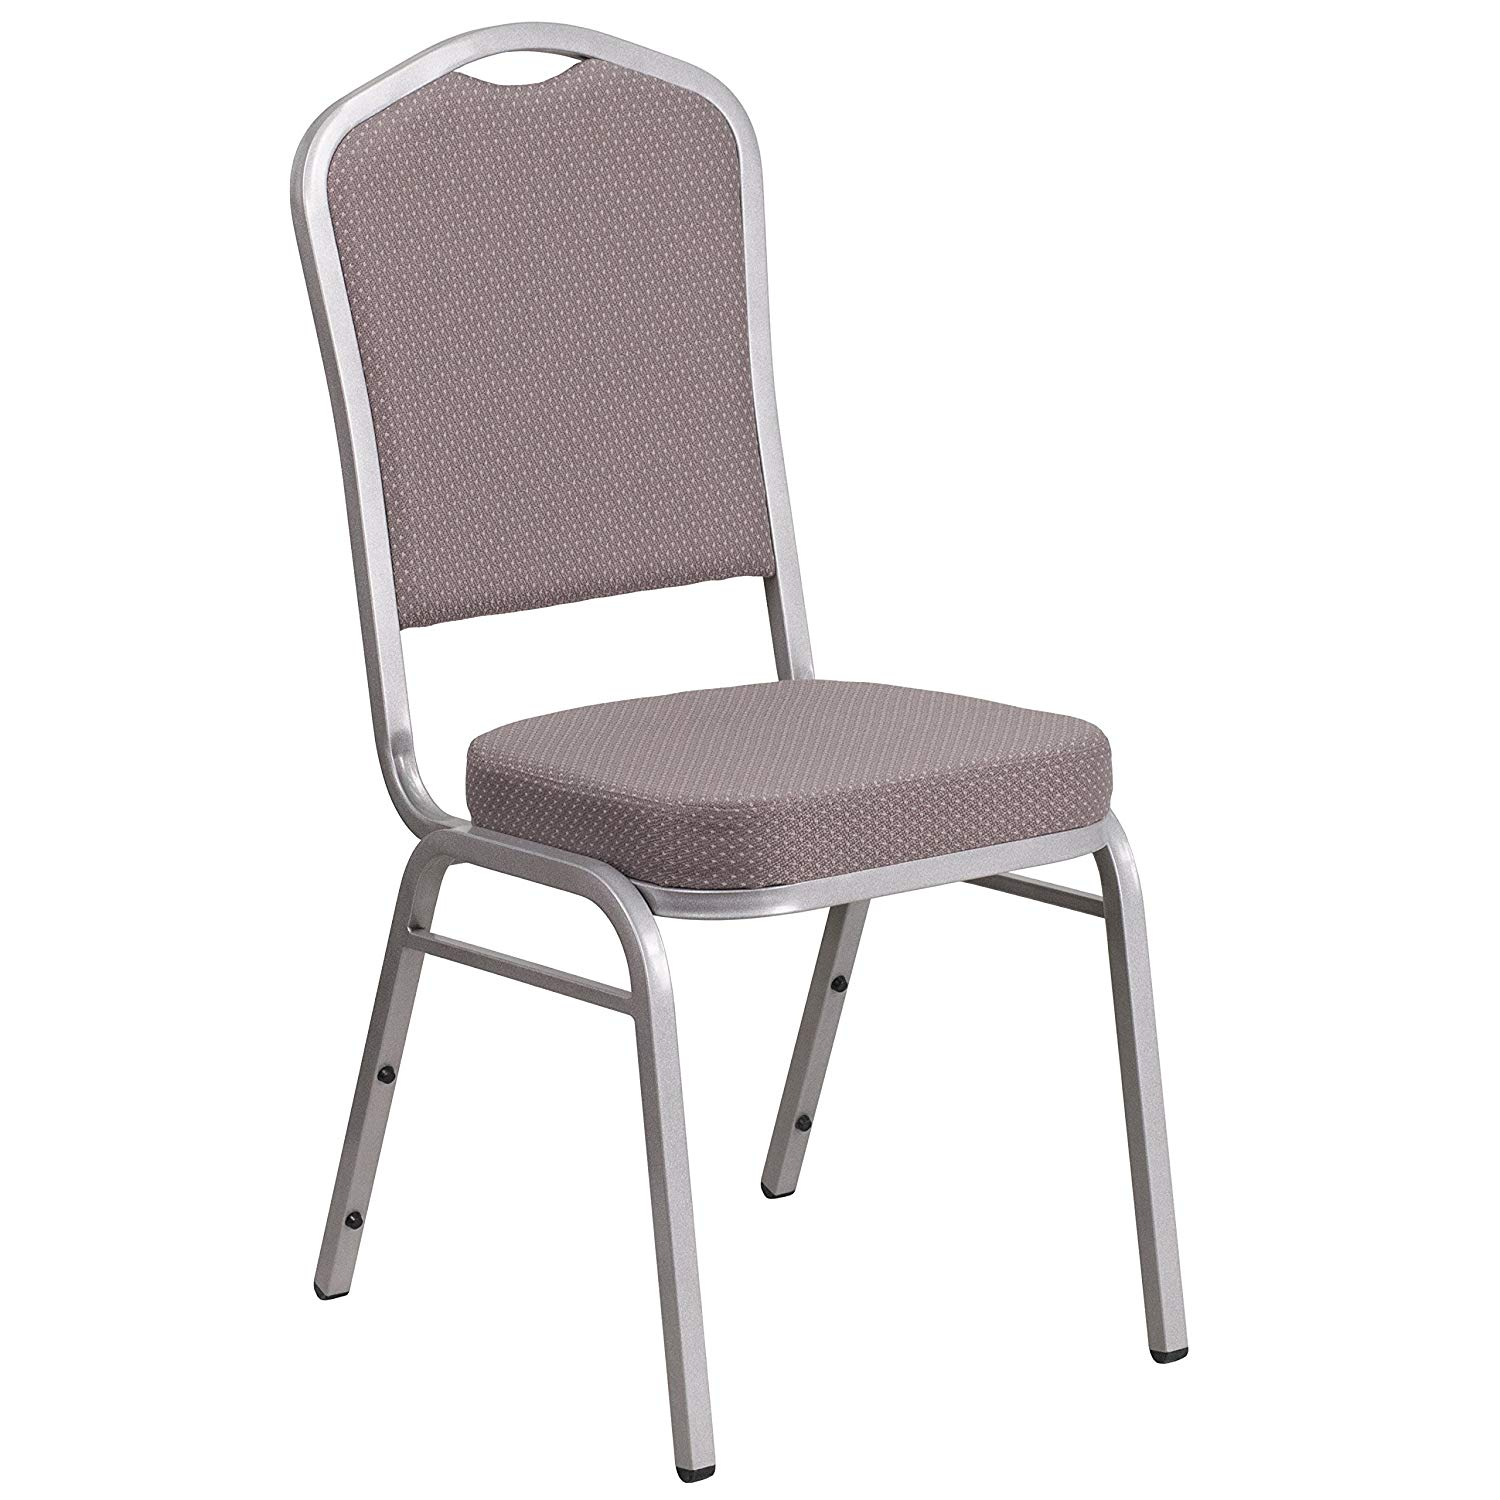 #43 - CROWN BACK BANQUET CHAIR WITH GRAY DOT FABRIC